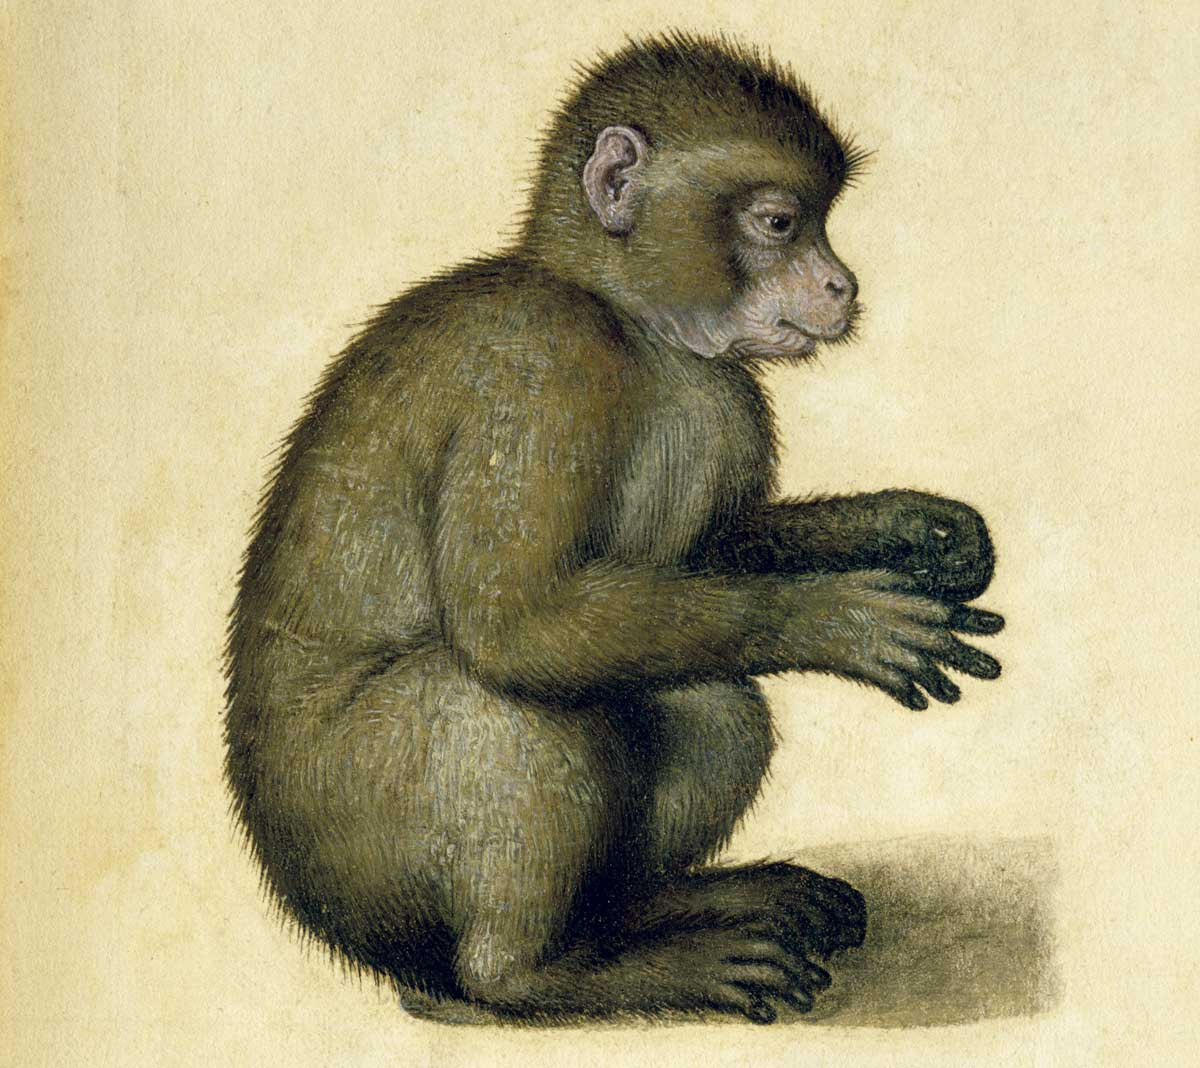 Dürer's monkey, 16th century © Bridgeman Images.